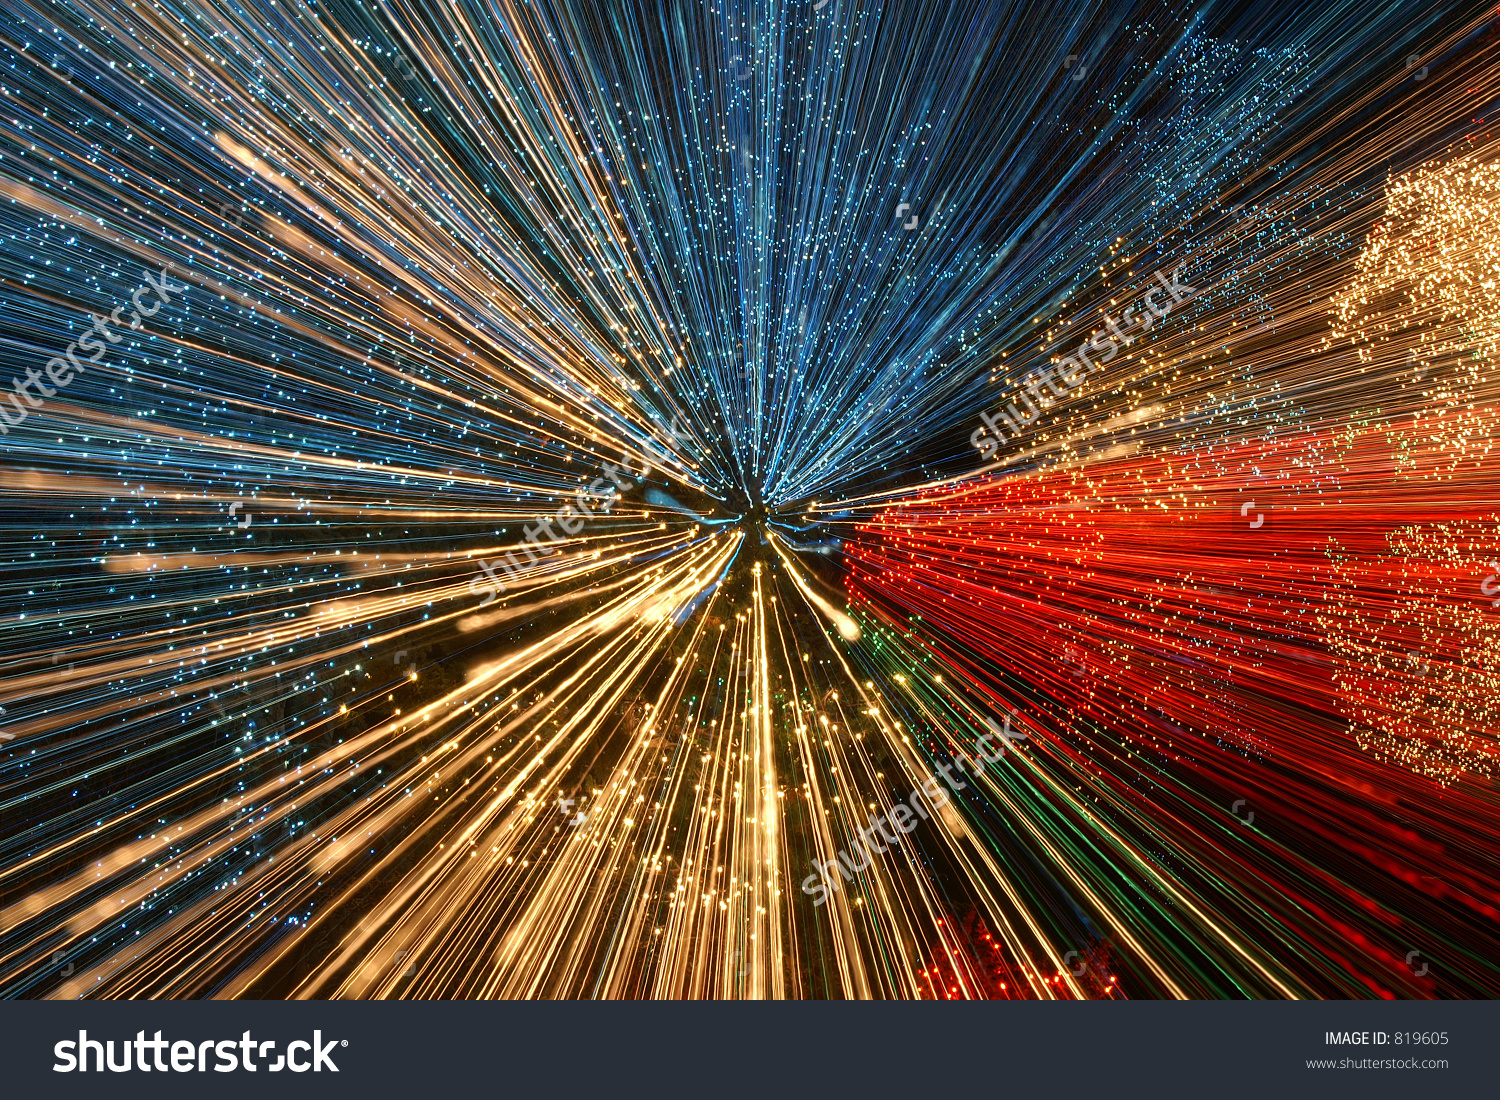 Christmas Lights Zooming During Slow Shutter Stock Photo 819605.